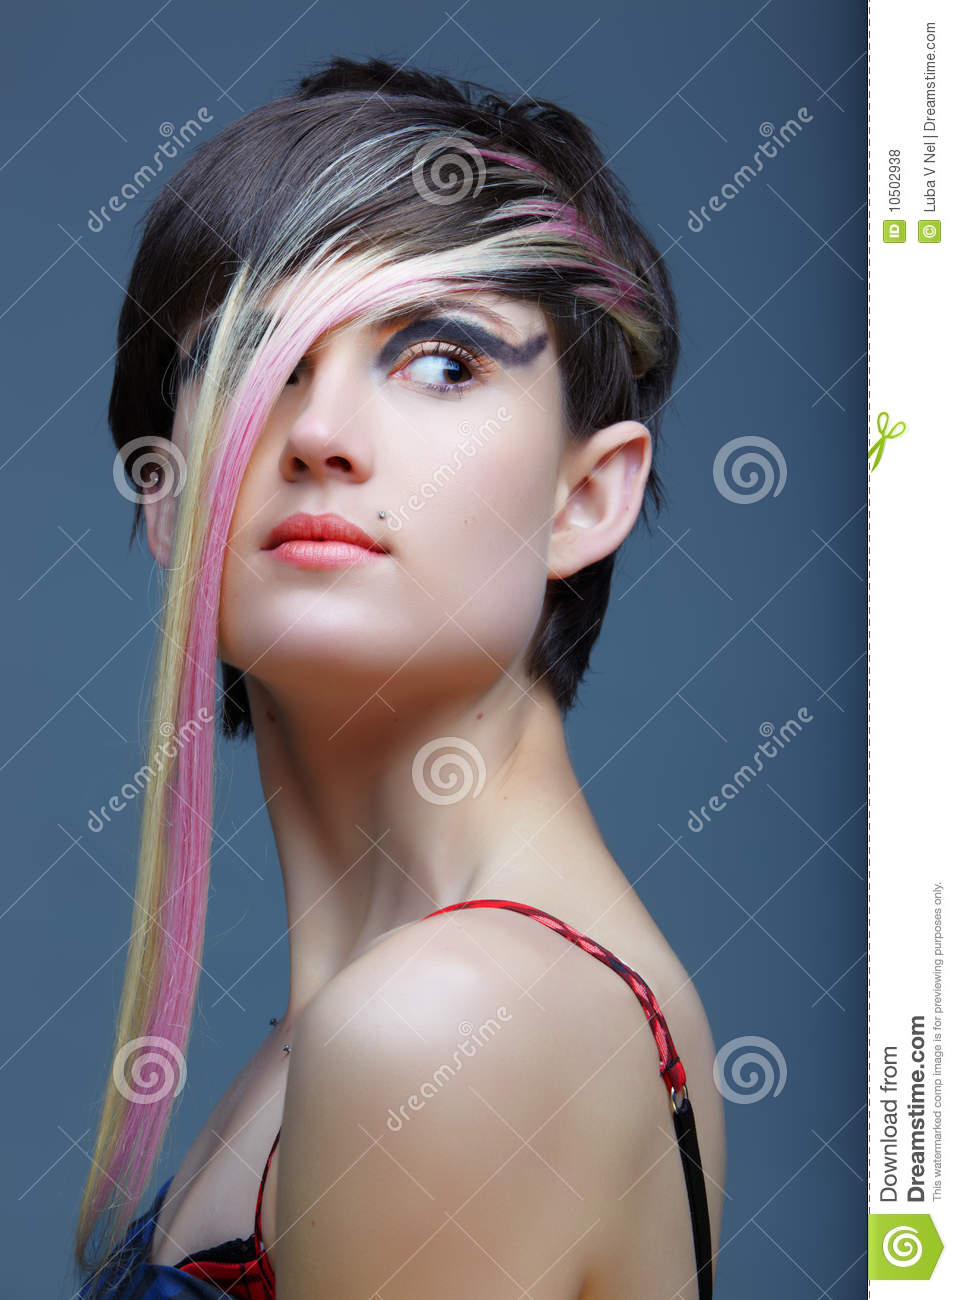 Emo Girl With Piercings And Fringe Stock Photo Image Of